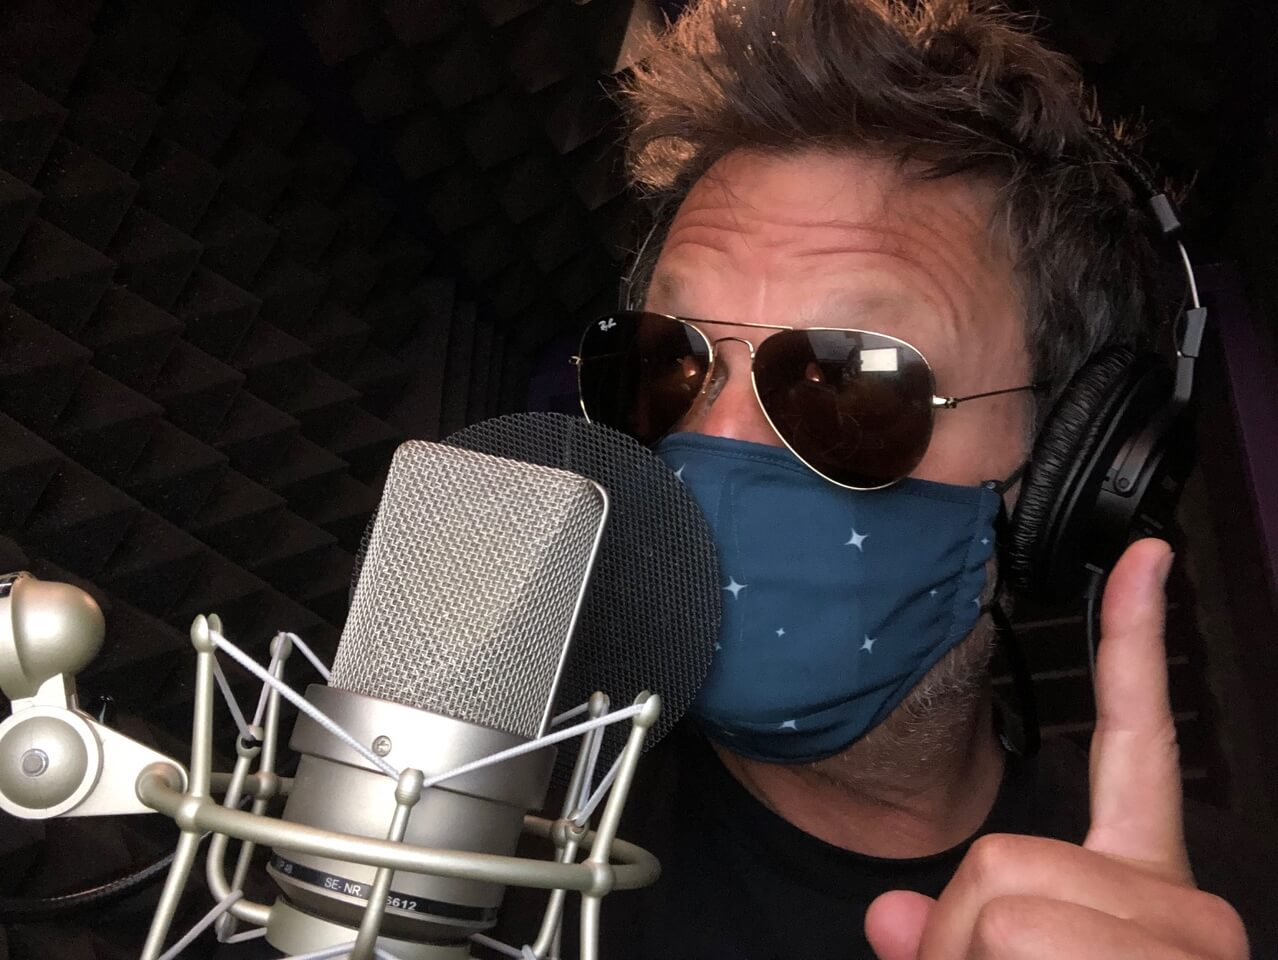 50 Classes-Beyond the Vision_Steve Blum at the mic with sunglasses and a mask on